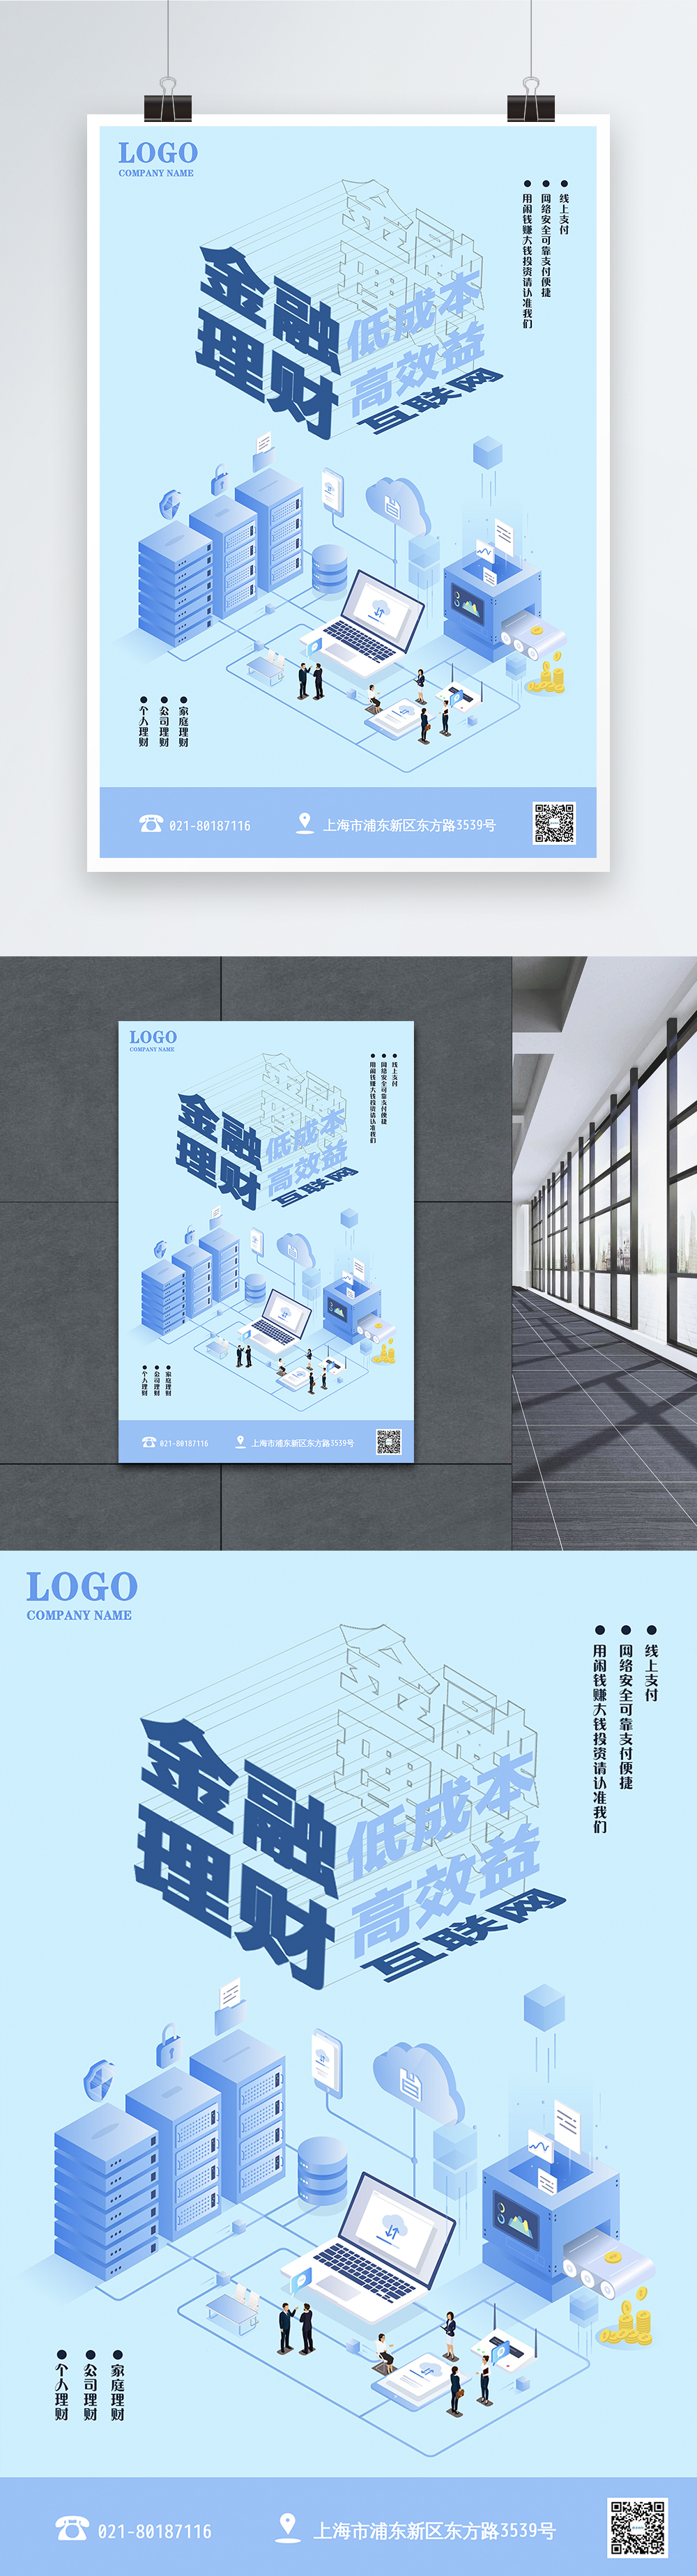 Blue internet investment and financial posters template ...